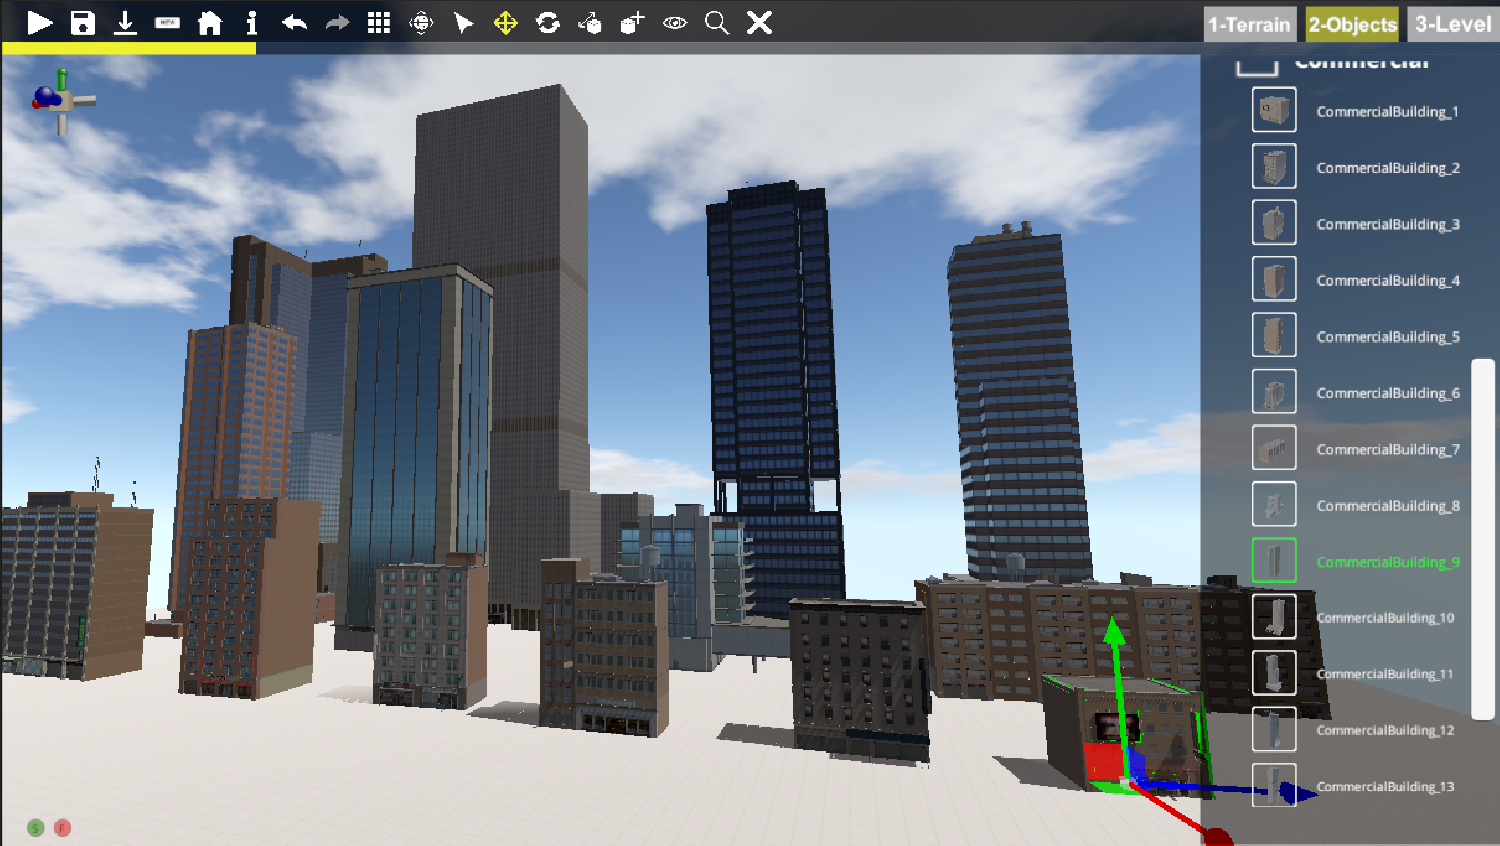 14 buildings from Larry's Lucid City map are now in the Level Editor